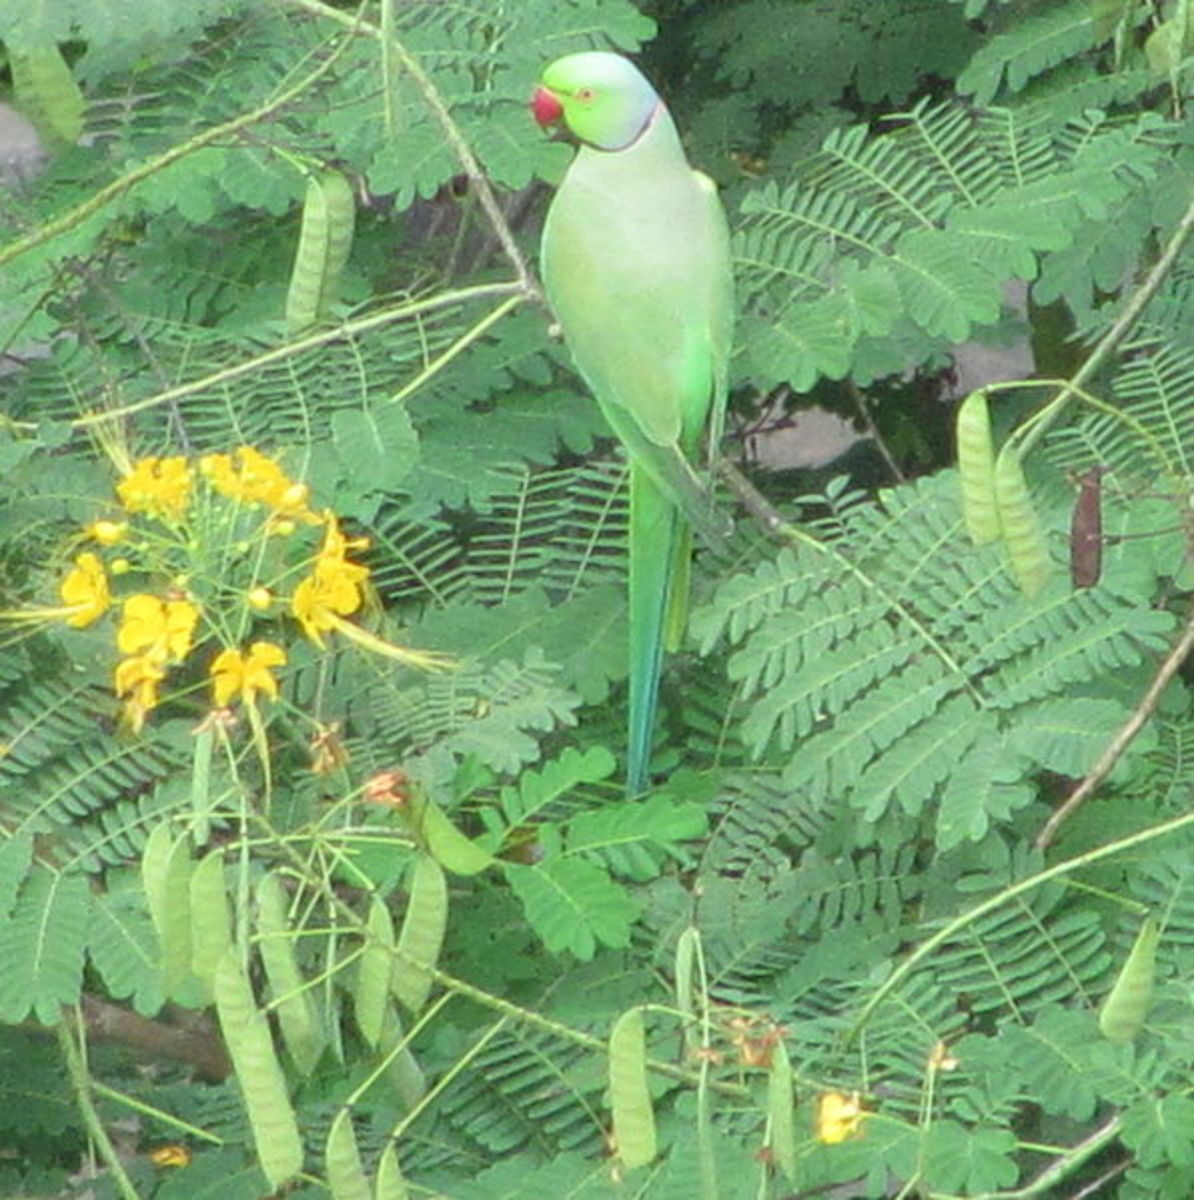 A Parakeet In The Wild In India